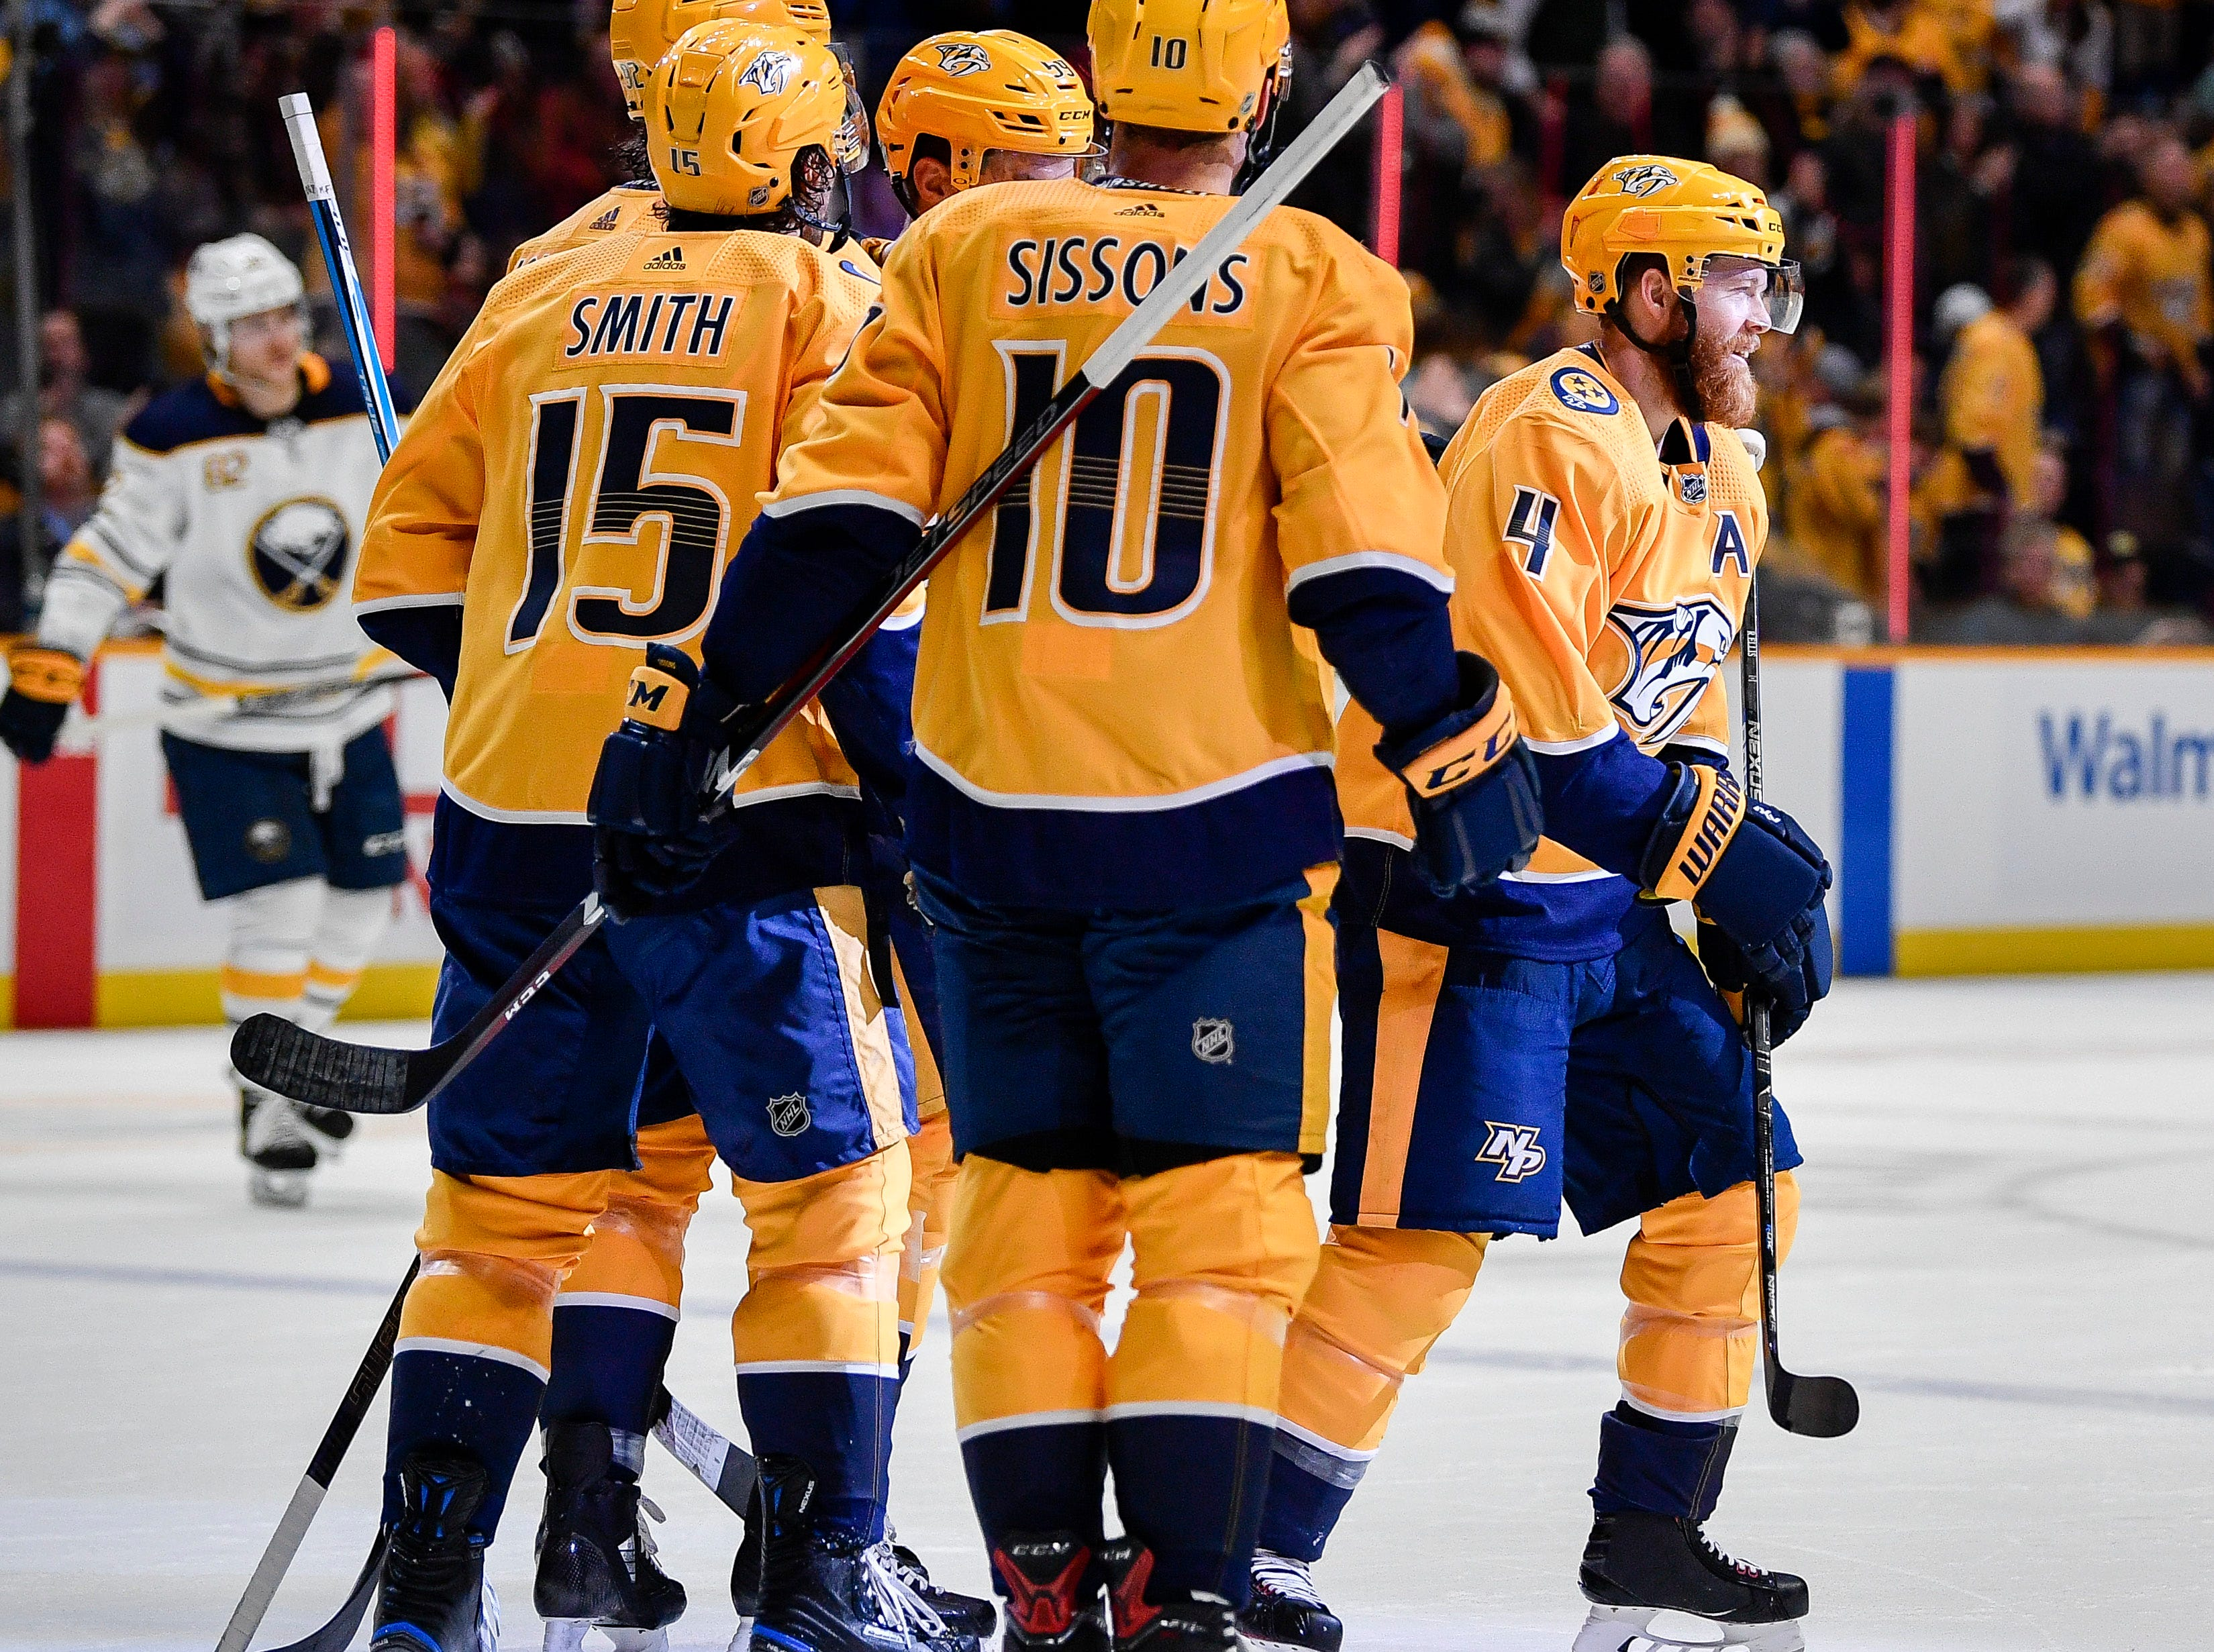 Nashville Predators defenseman Ryan Ellis (4) reacts to scoring a goal against the Buffalo Sabres during the first period at Bridgestone Arena in Nashville, Tenn., Monday, Dec. 3, 2018.